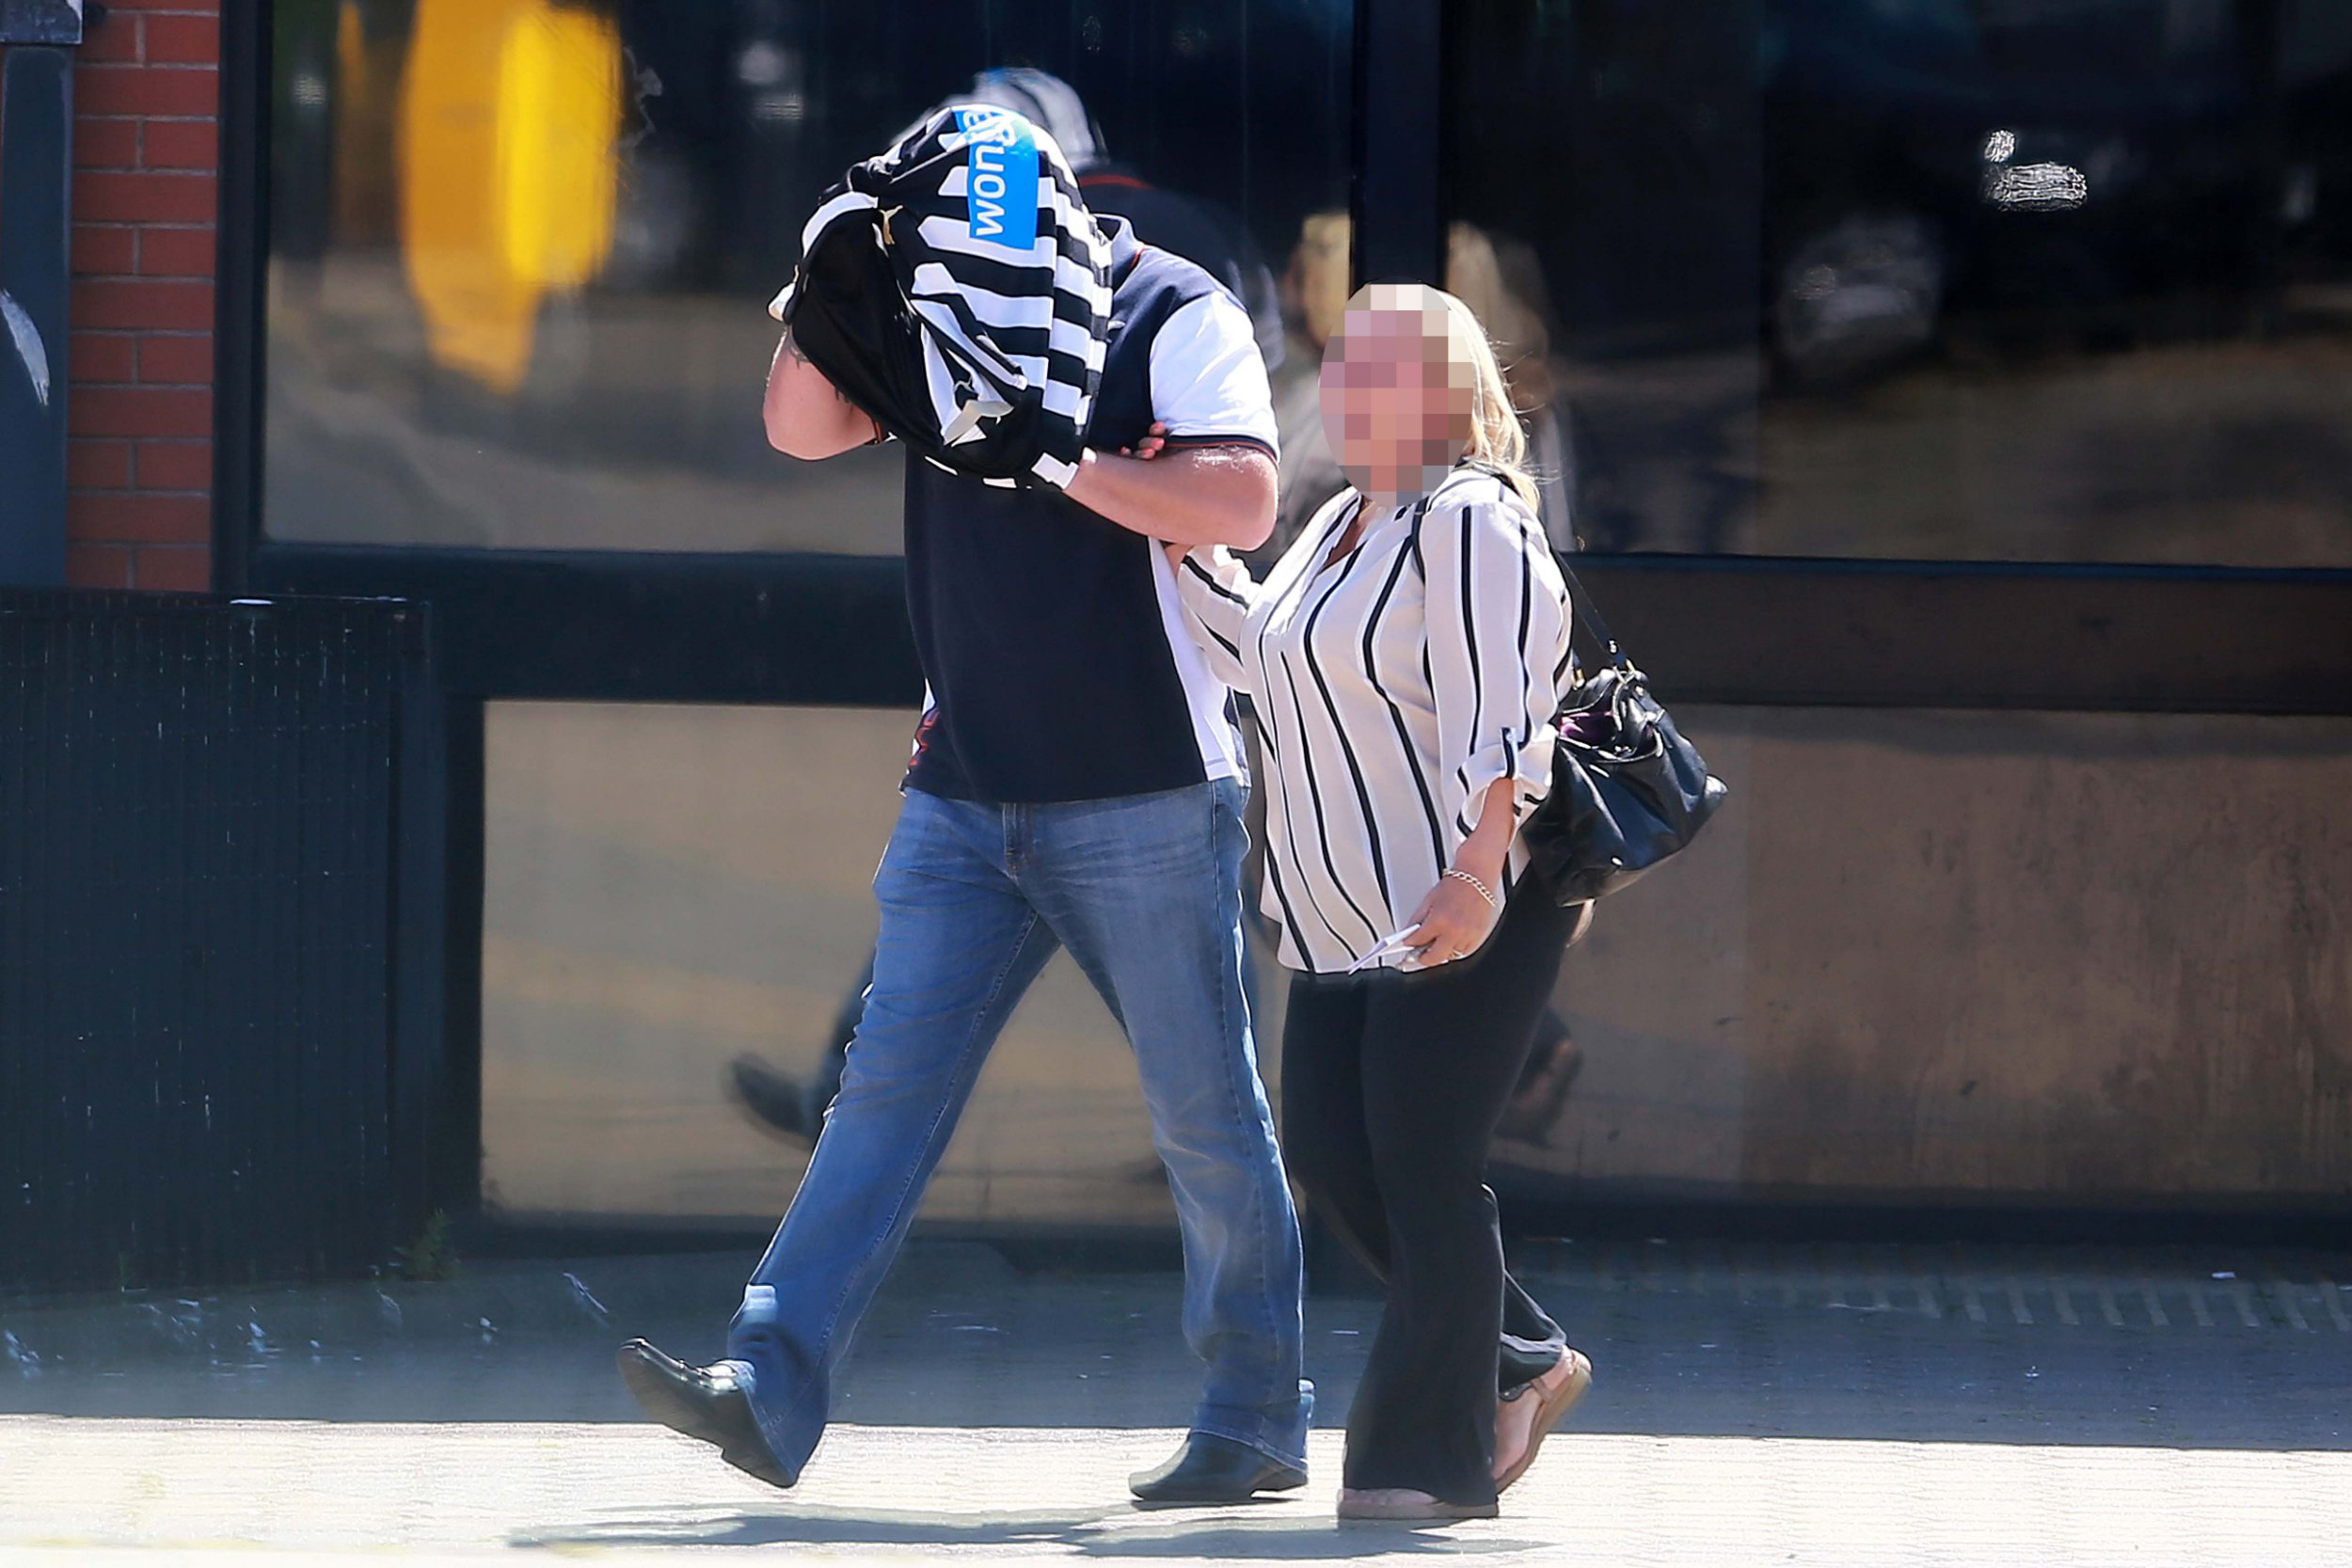 A drunk passenger who had downed cocktails and taken prescription drugs flew into an aggressive rage while onboard a flight.Miles Cowell became abusive while travelling on a packed Jet2 plane from Faro to Newcastle before deliberately and continuously banging his chair, causing food and drink to spill over an autistic boy sitting behind him, a court heard.caption: Miles Cowell with an unknown female outside North Tyneside Magistrates Court